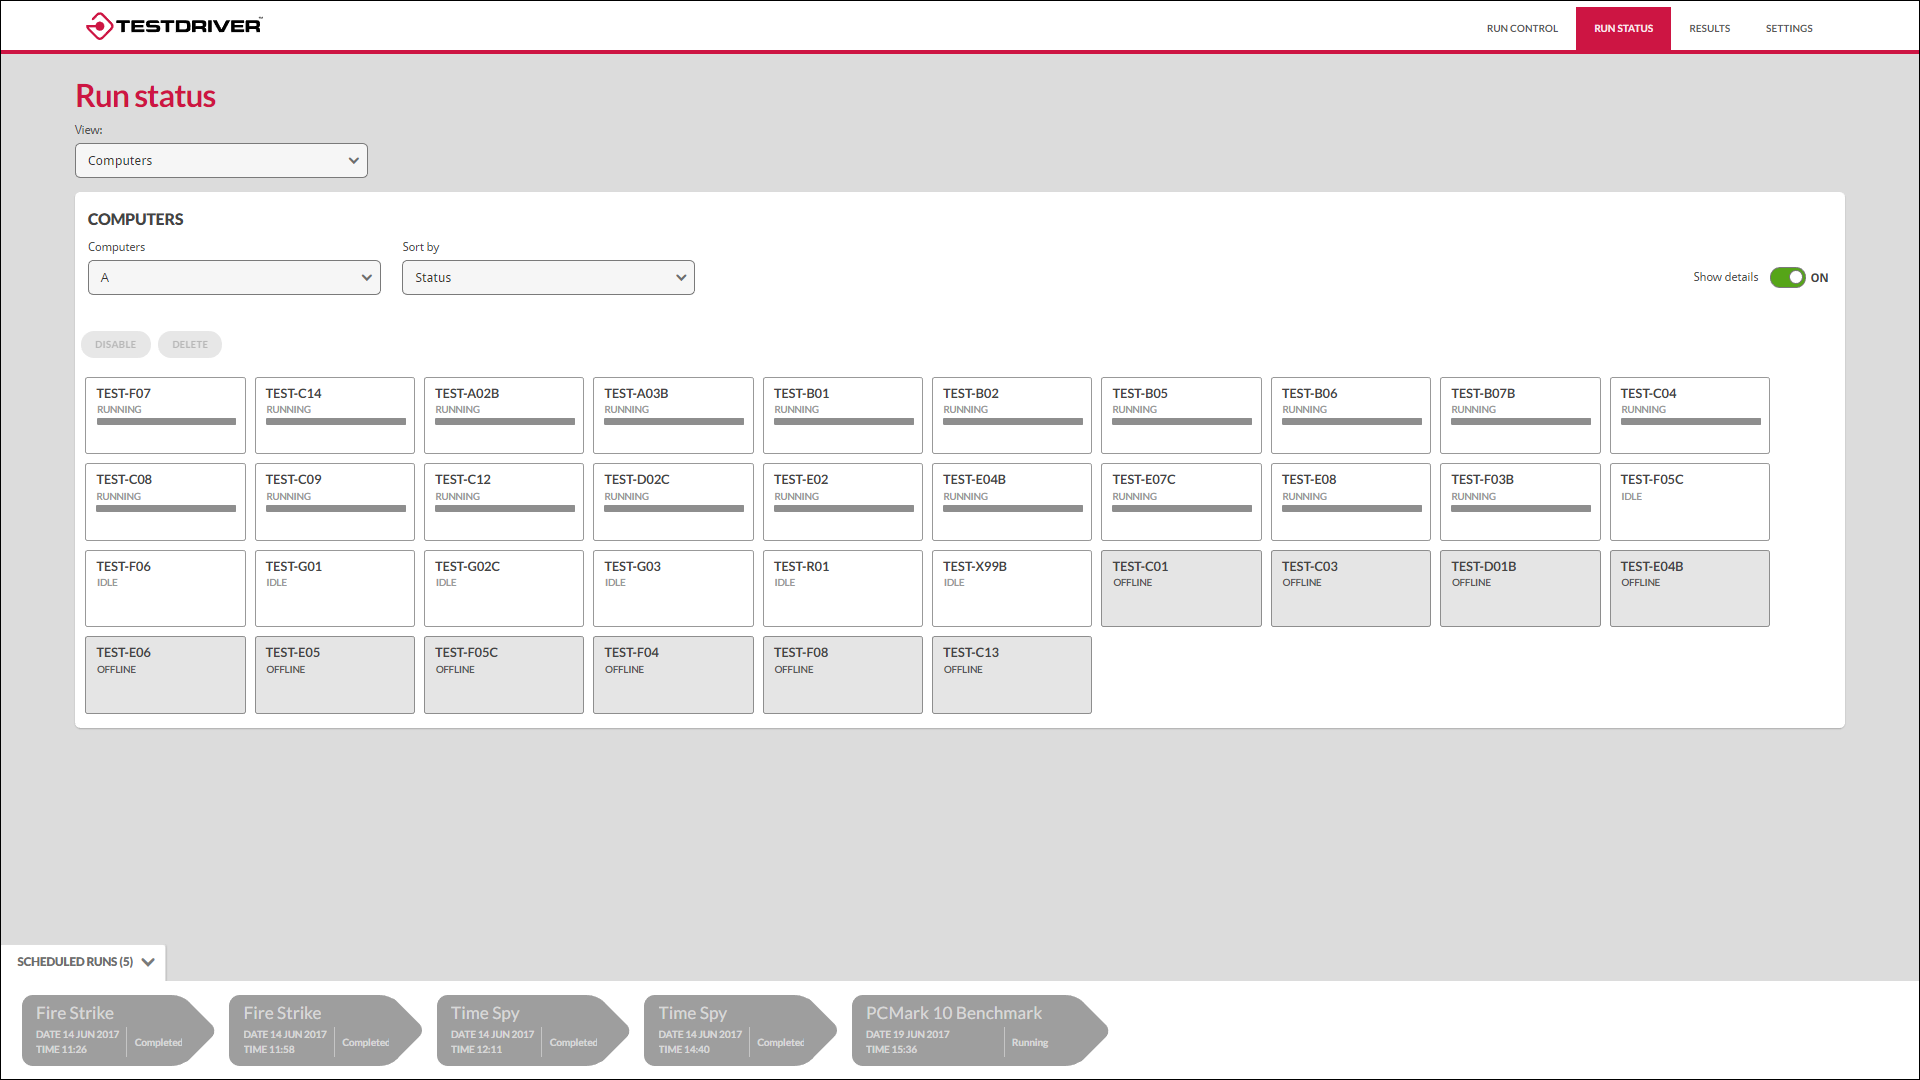 Testdriver scheduling screenshot